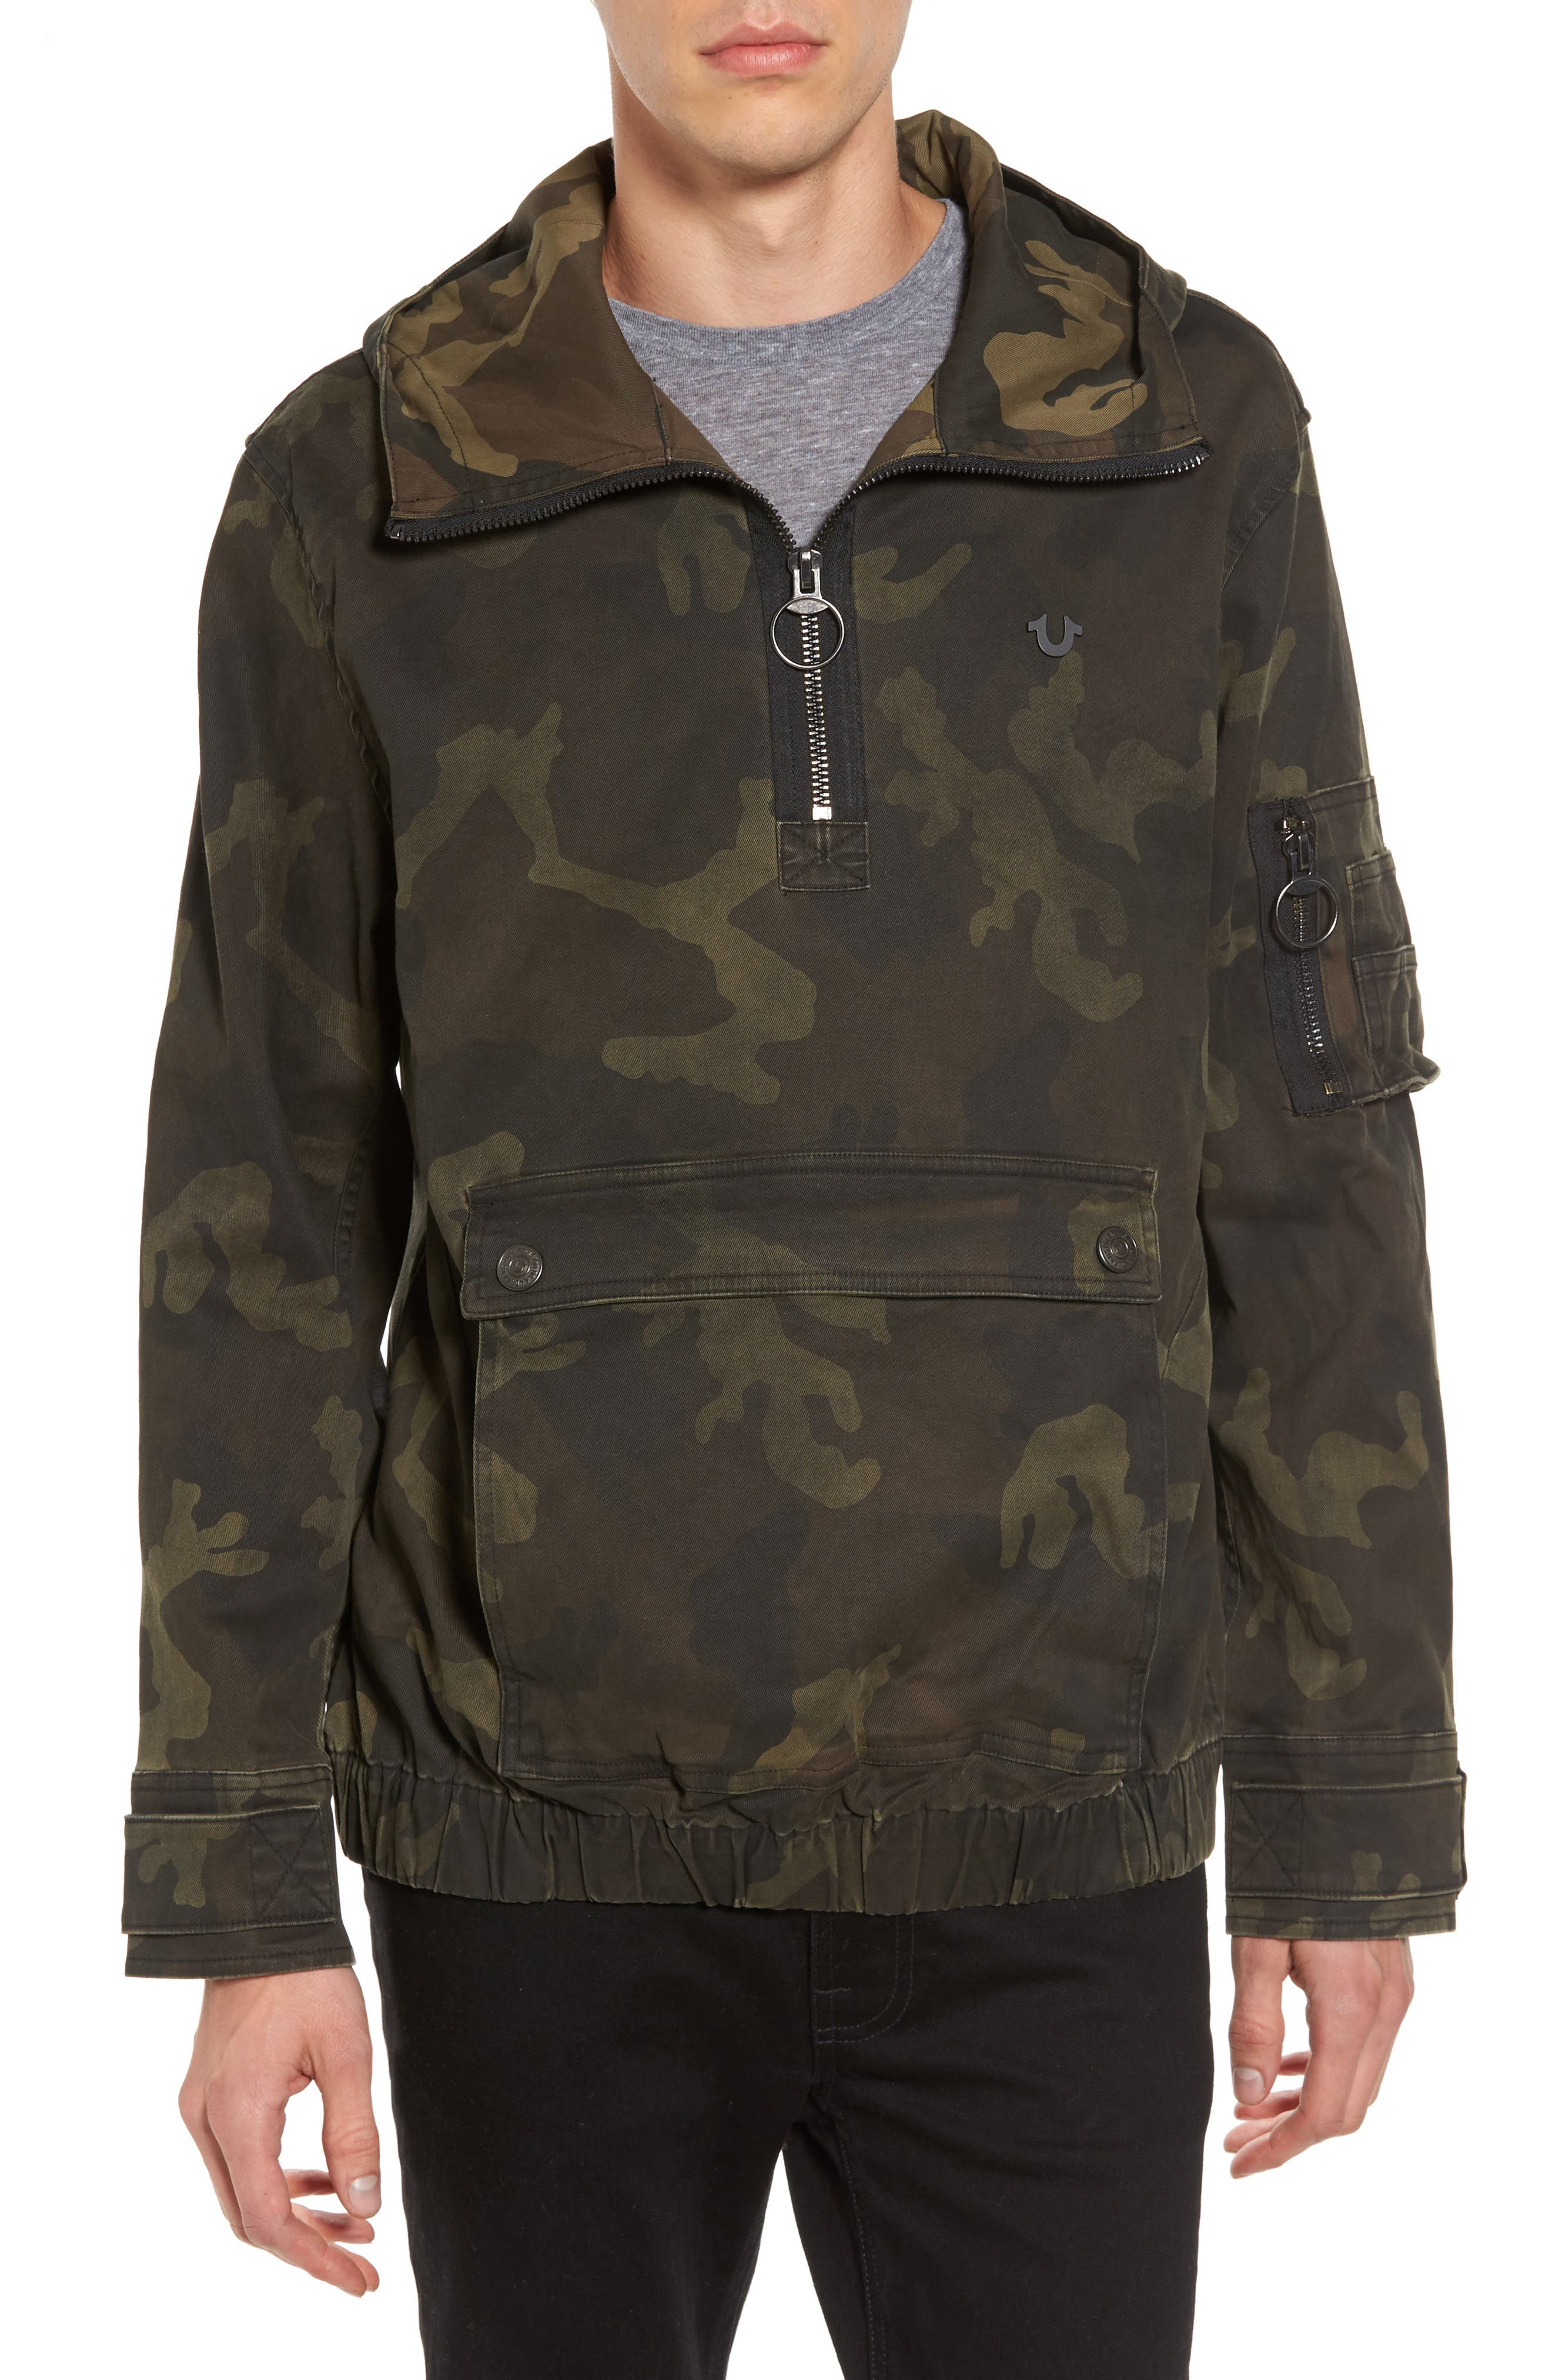 Camo Anorak,                             Main thumbnail 1, color,                             Military Green Camo